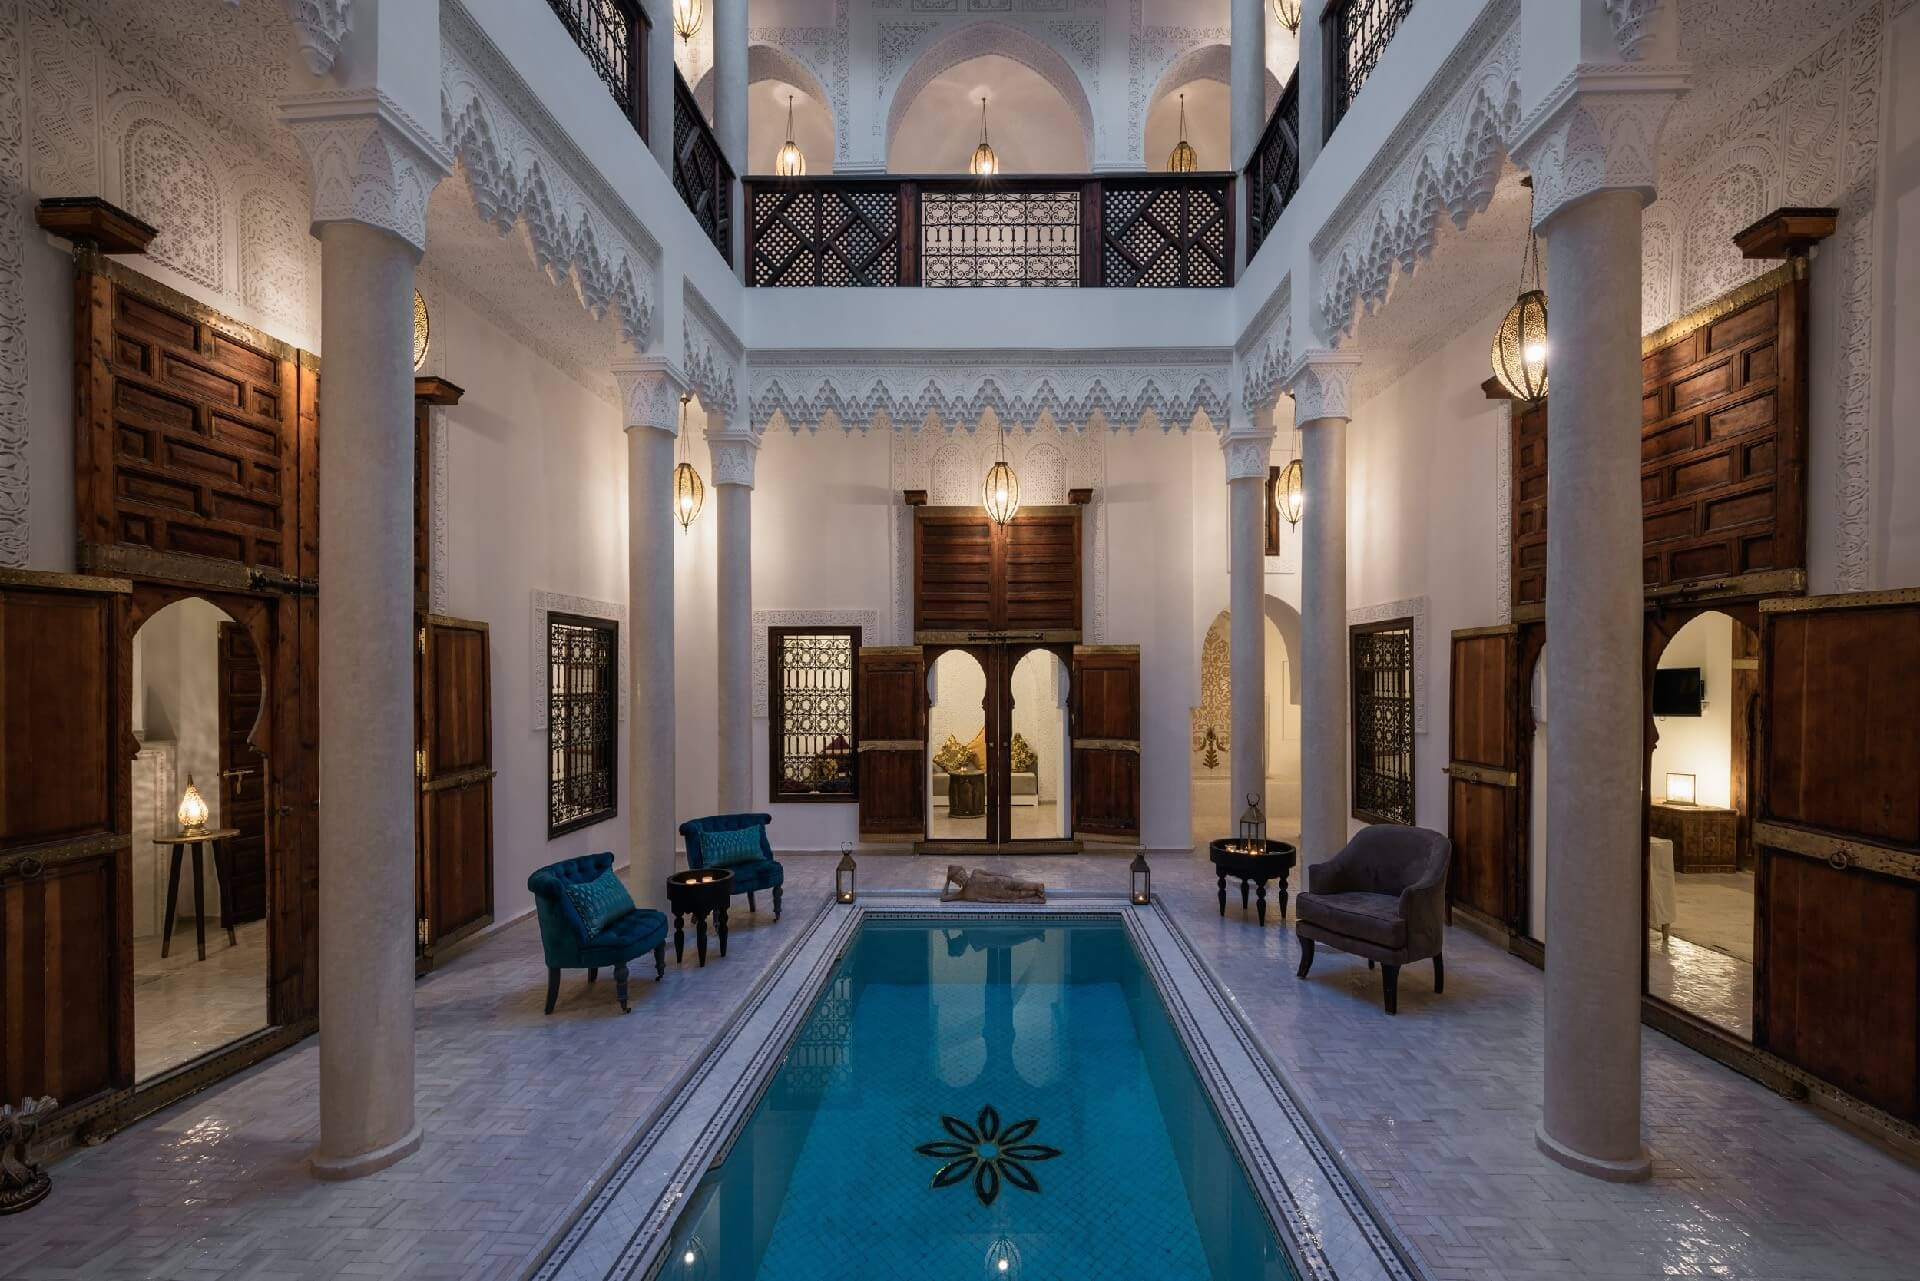 Marrakech riads luxury accommodation in marrakesh morocco - Riad medina marrakech avec piscine ...